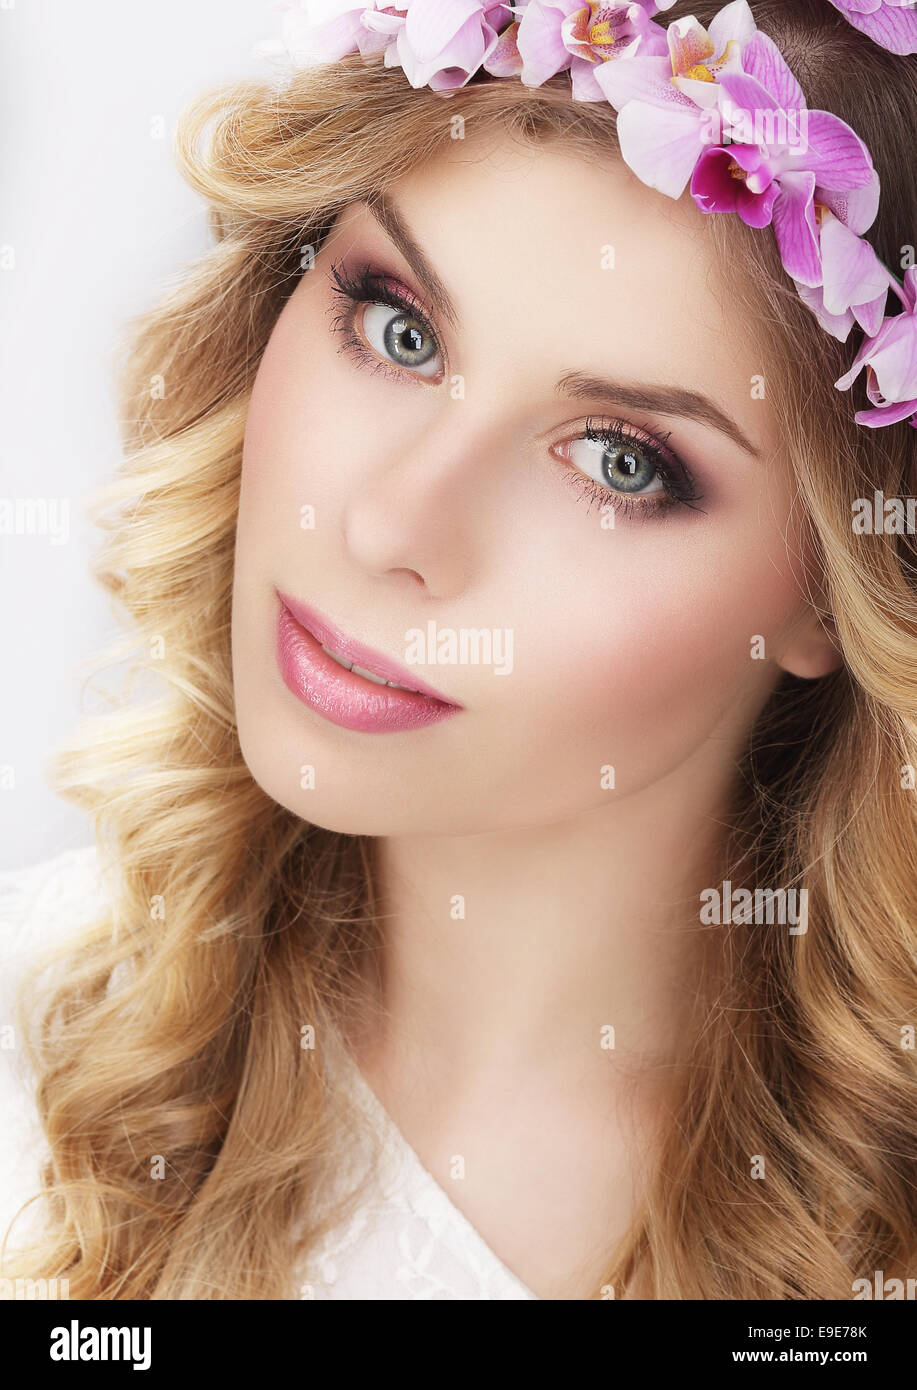 Charming Girl in Kranz aus Blumen Stockbild